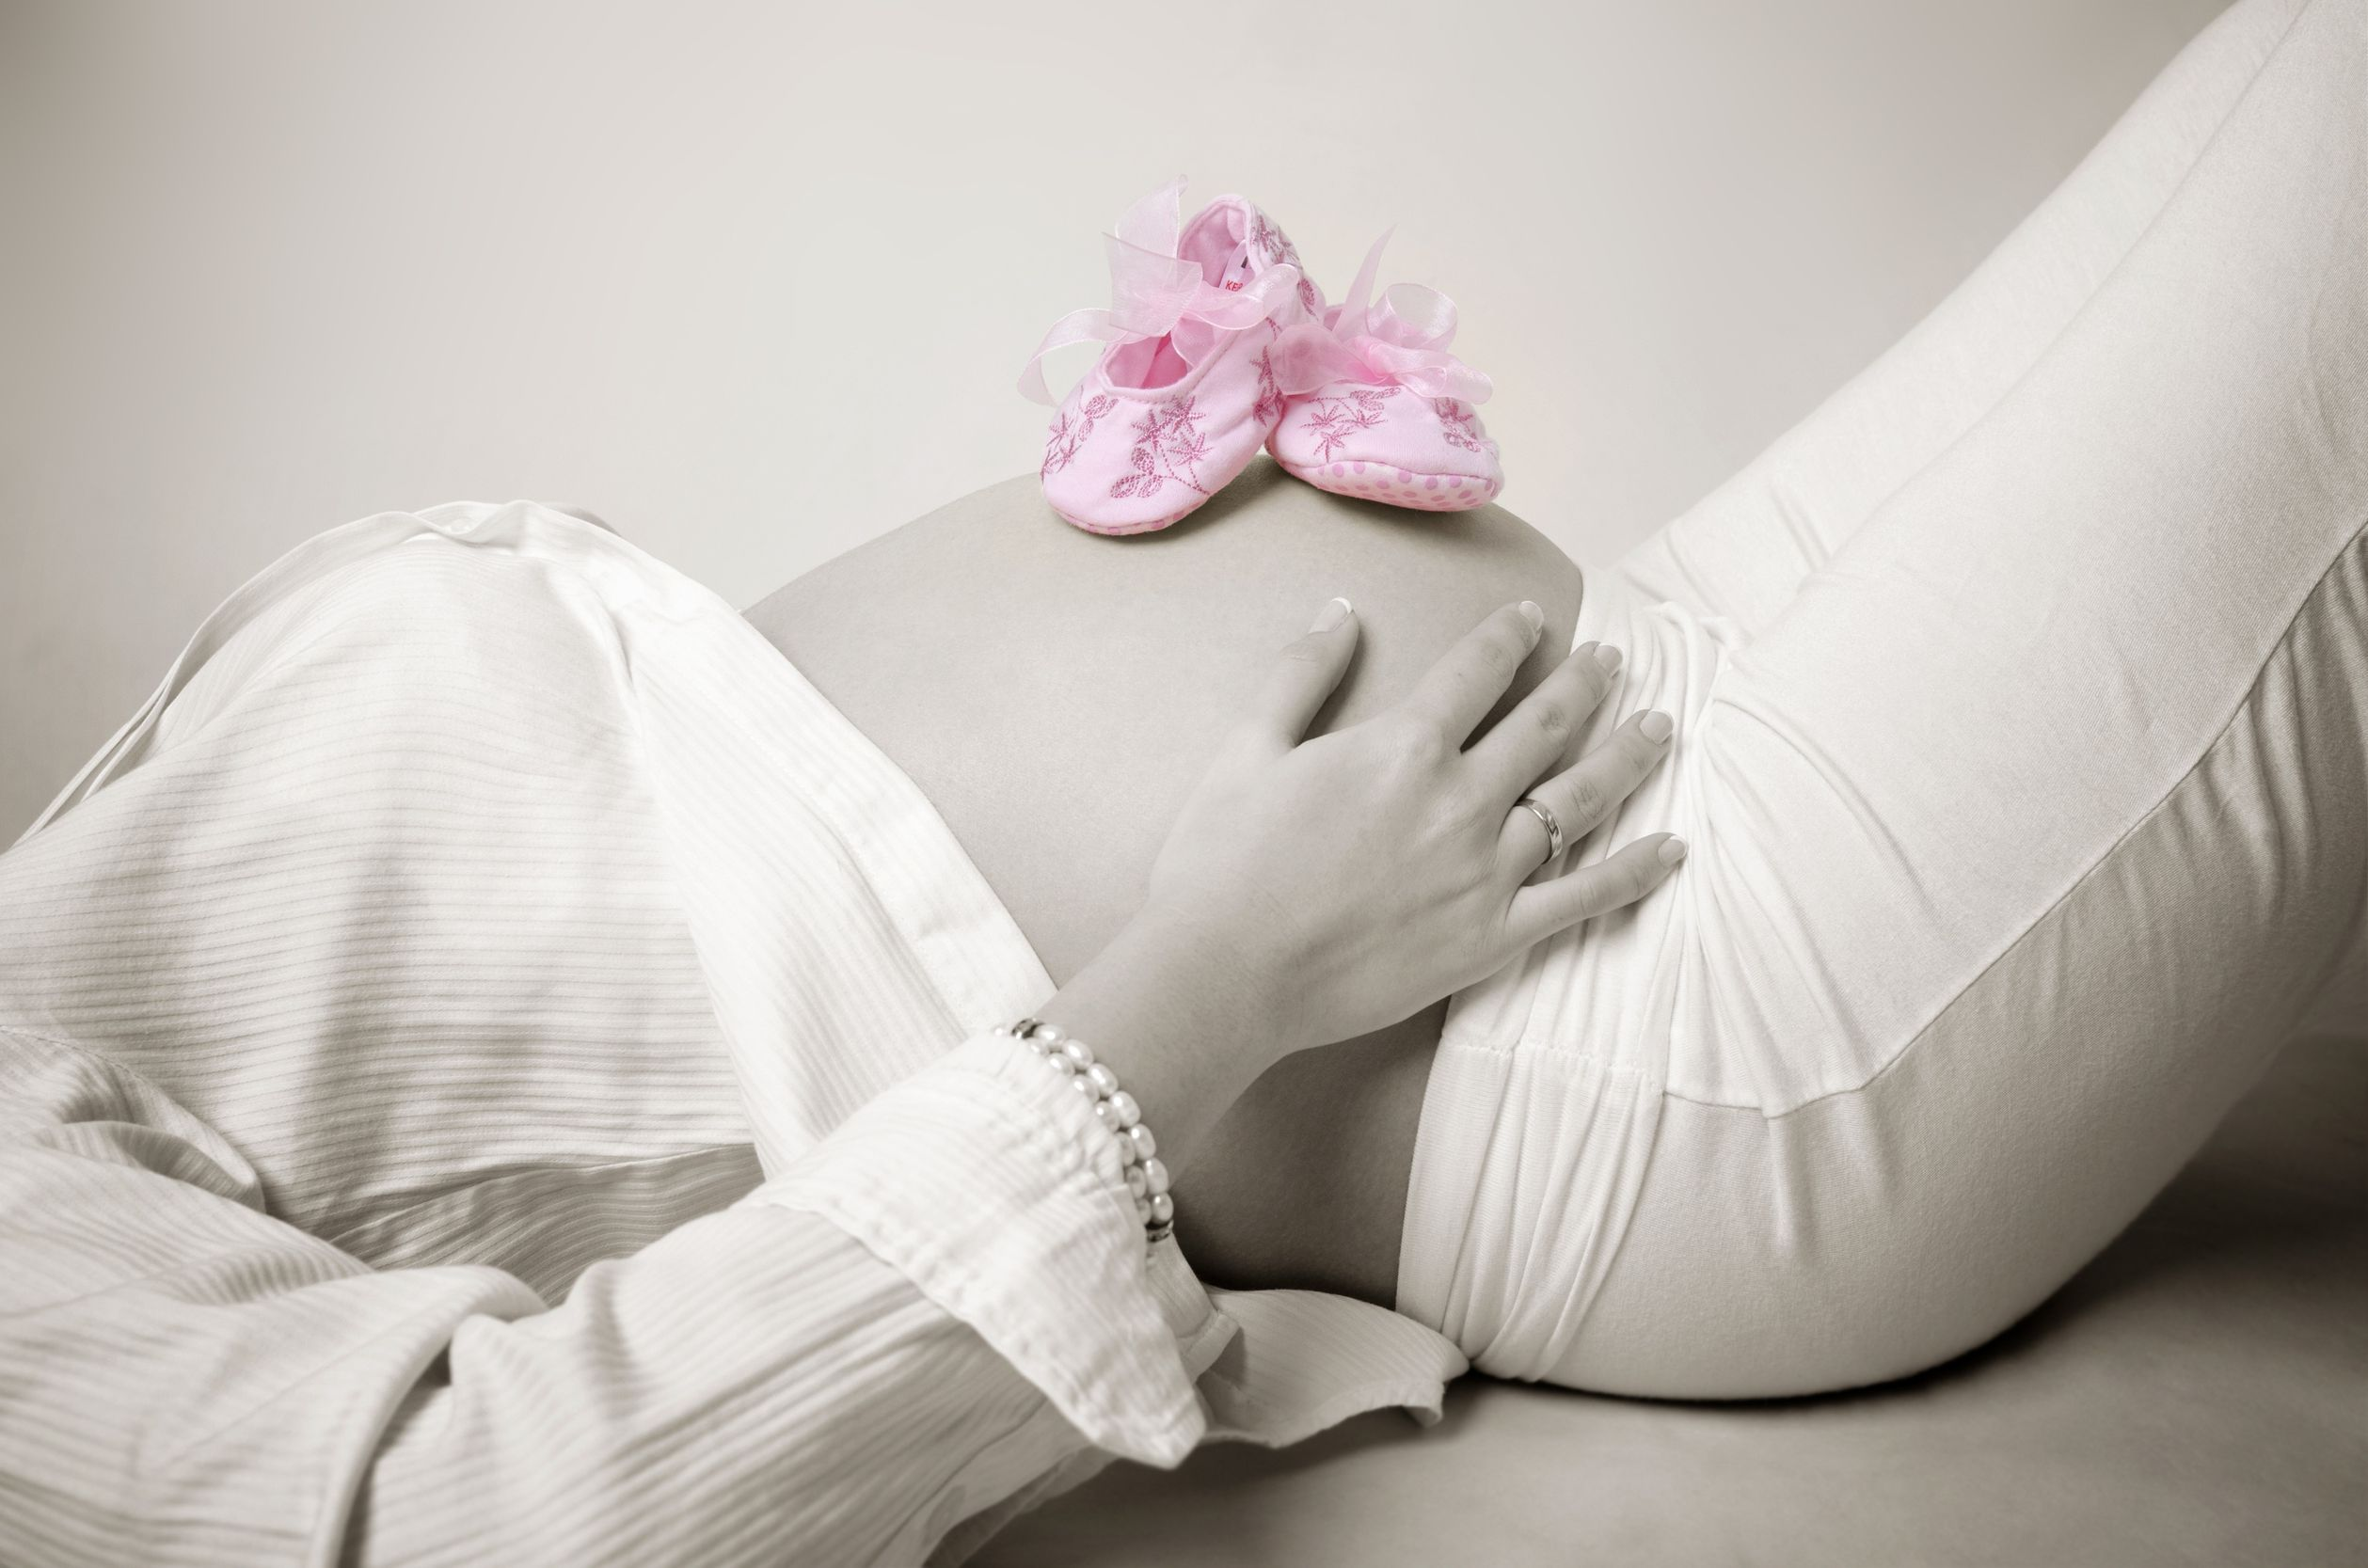 antenatal classes, private antental care, louise brennan, hertfordshire, nct, midwife